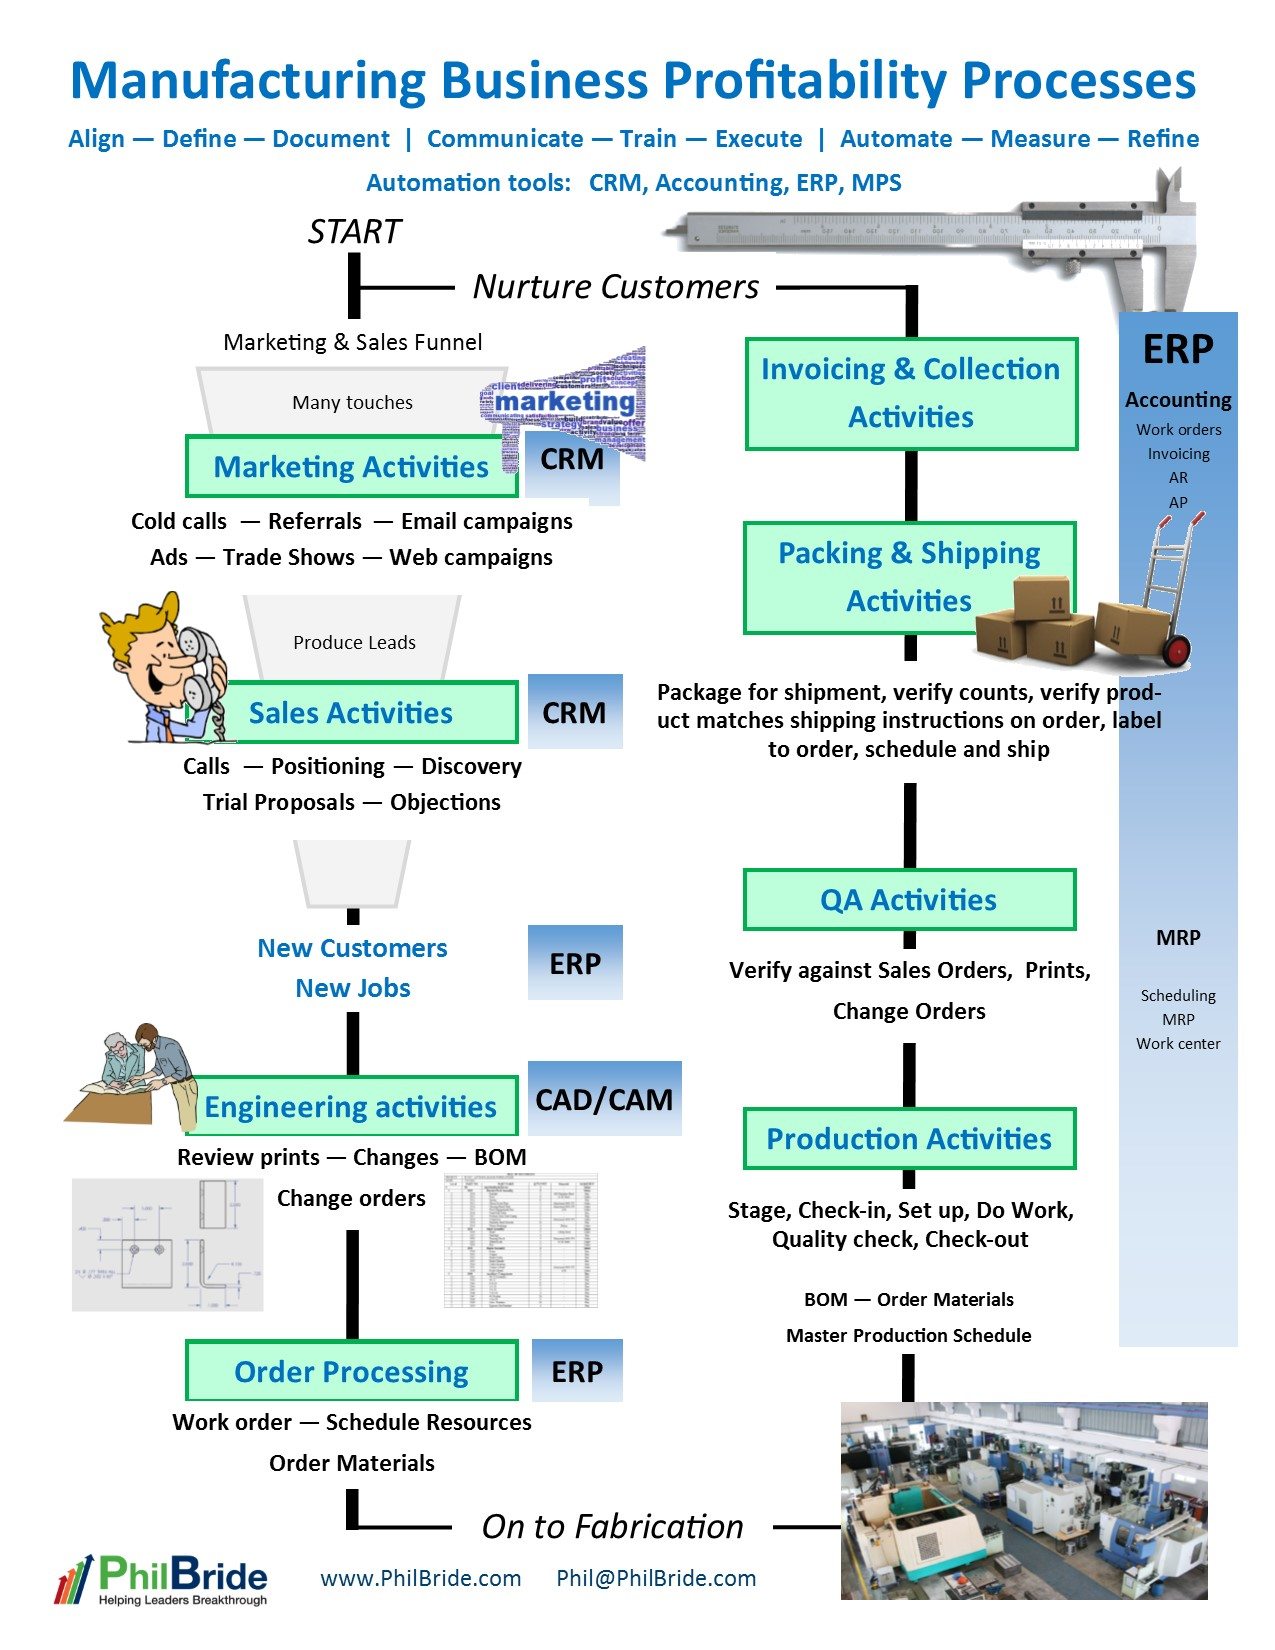 Manufacturing Business Processes InfoGraphic